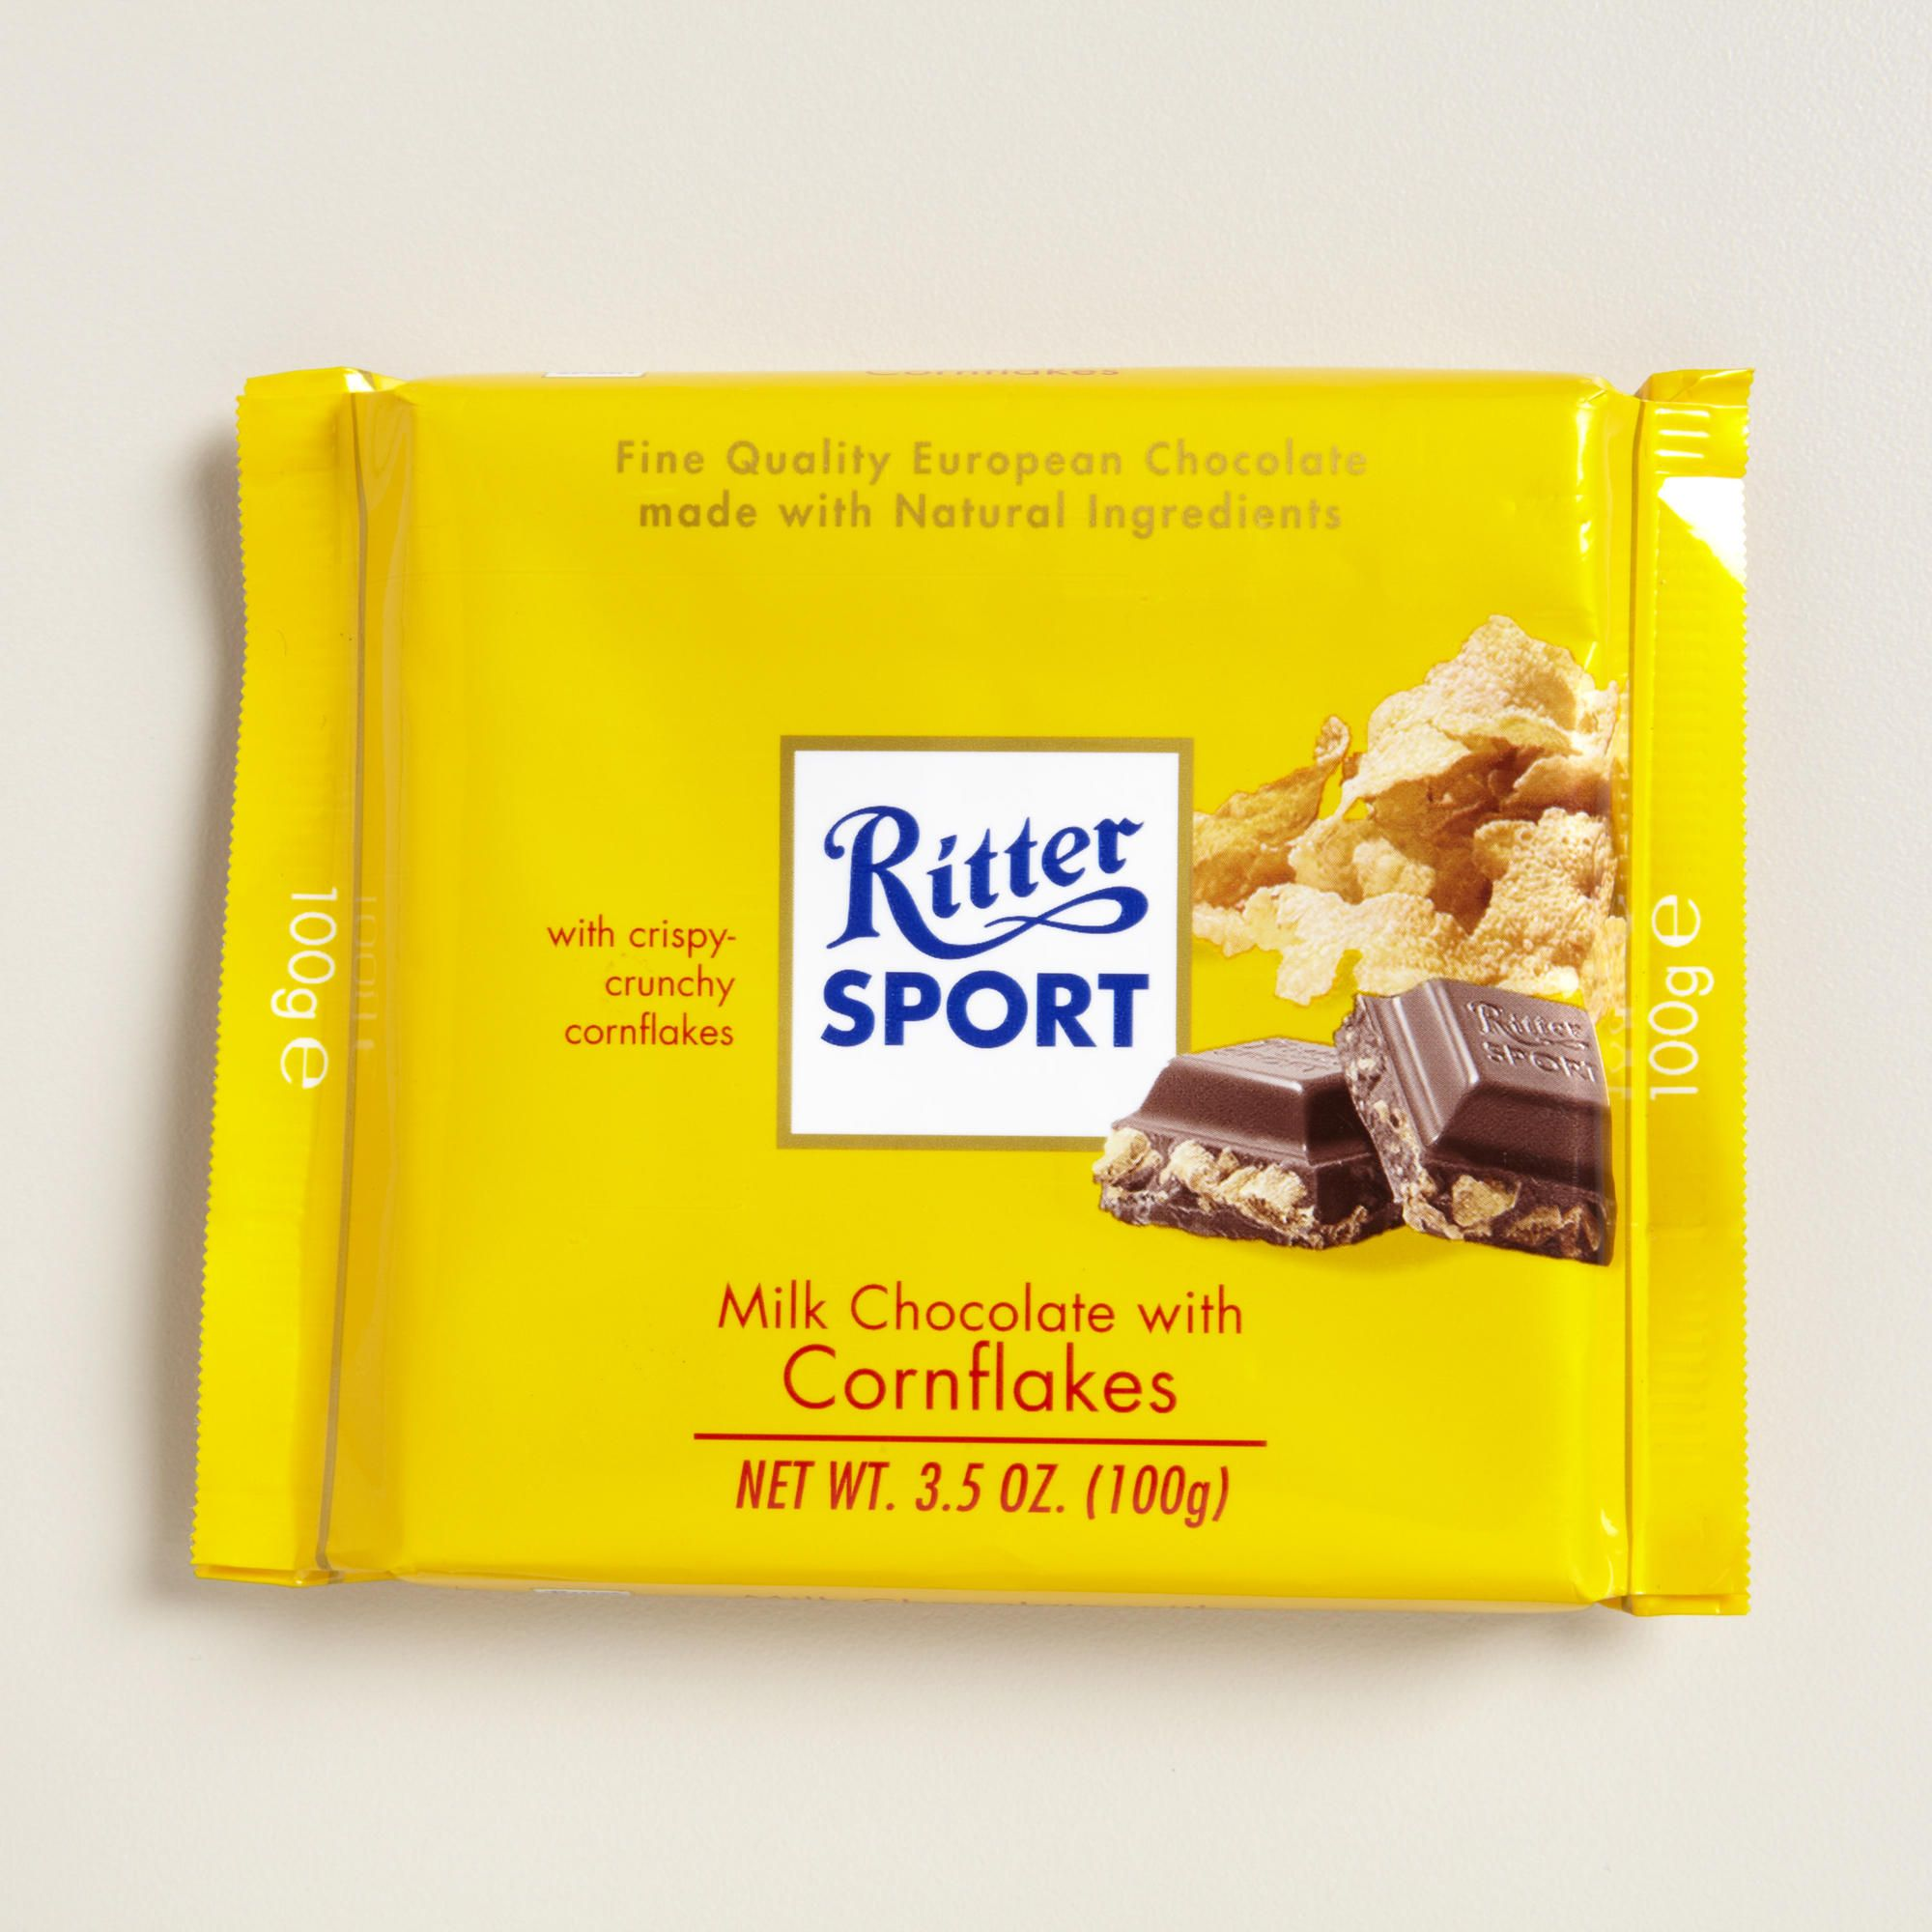 Ritter Sport Milk Chocolate With Cornflakes Pd Chocolate Milk Cornflakes Gourmet Chocolate